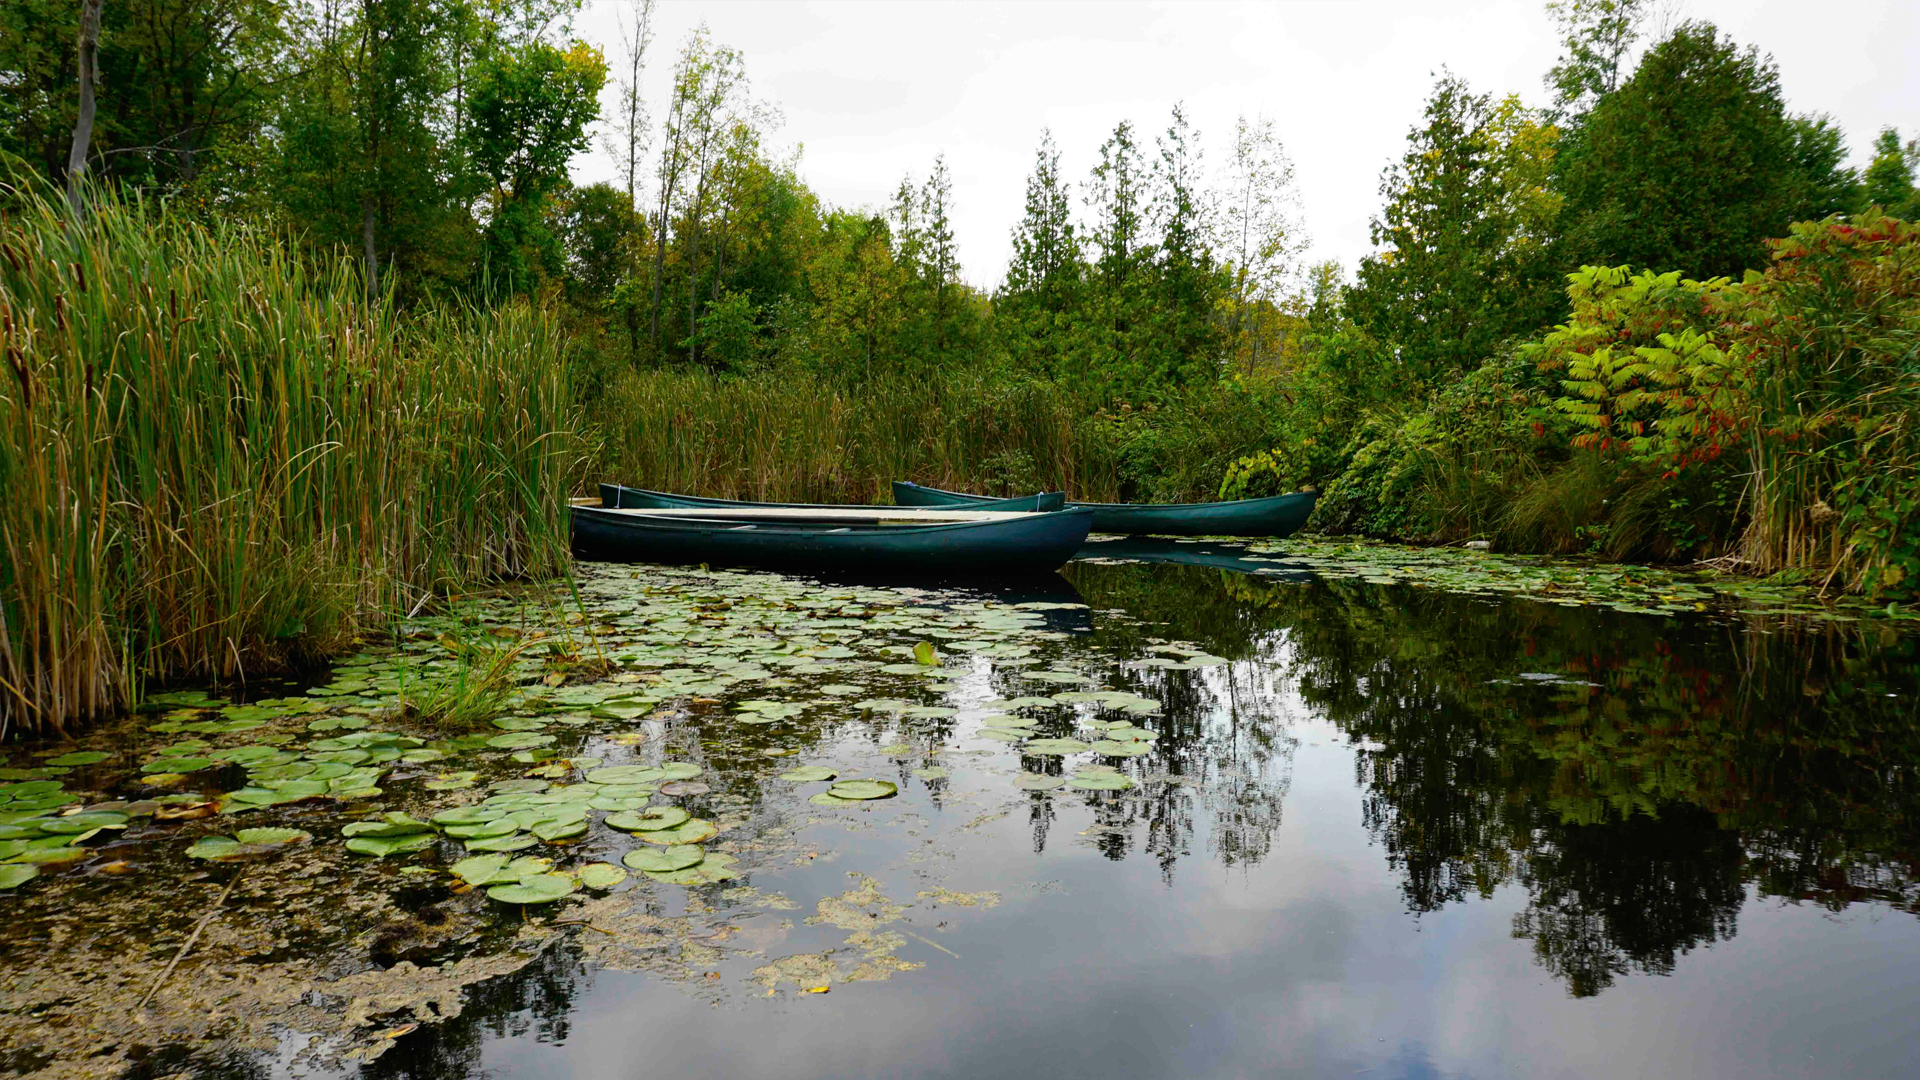 wyeea - Get Ready for National Paddling Week